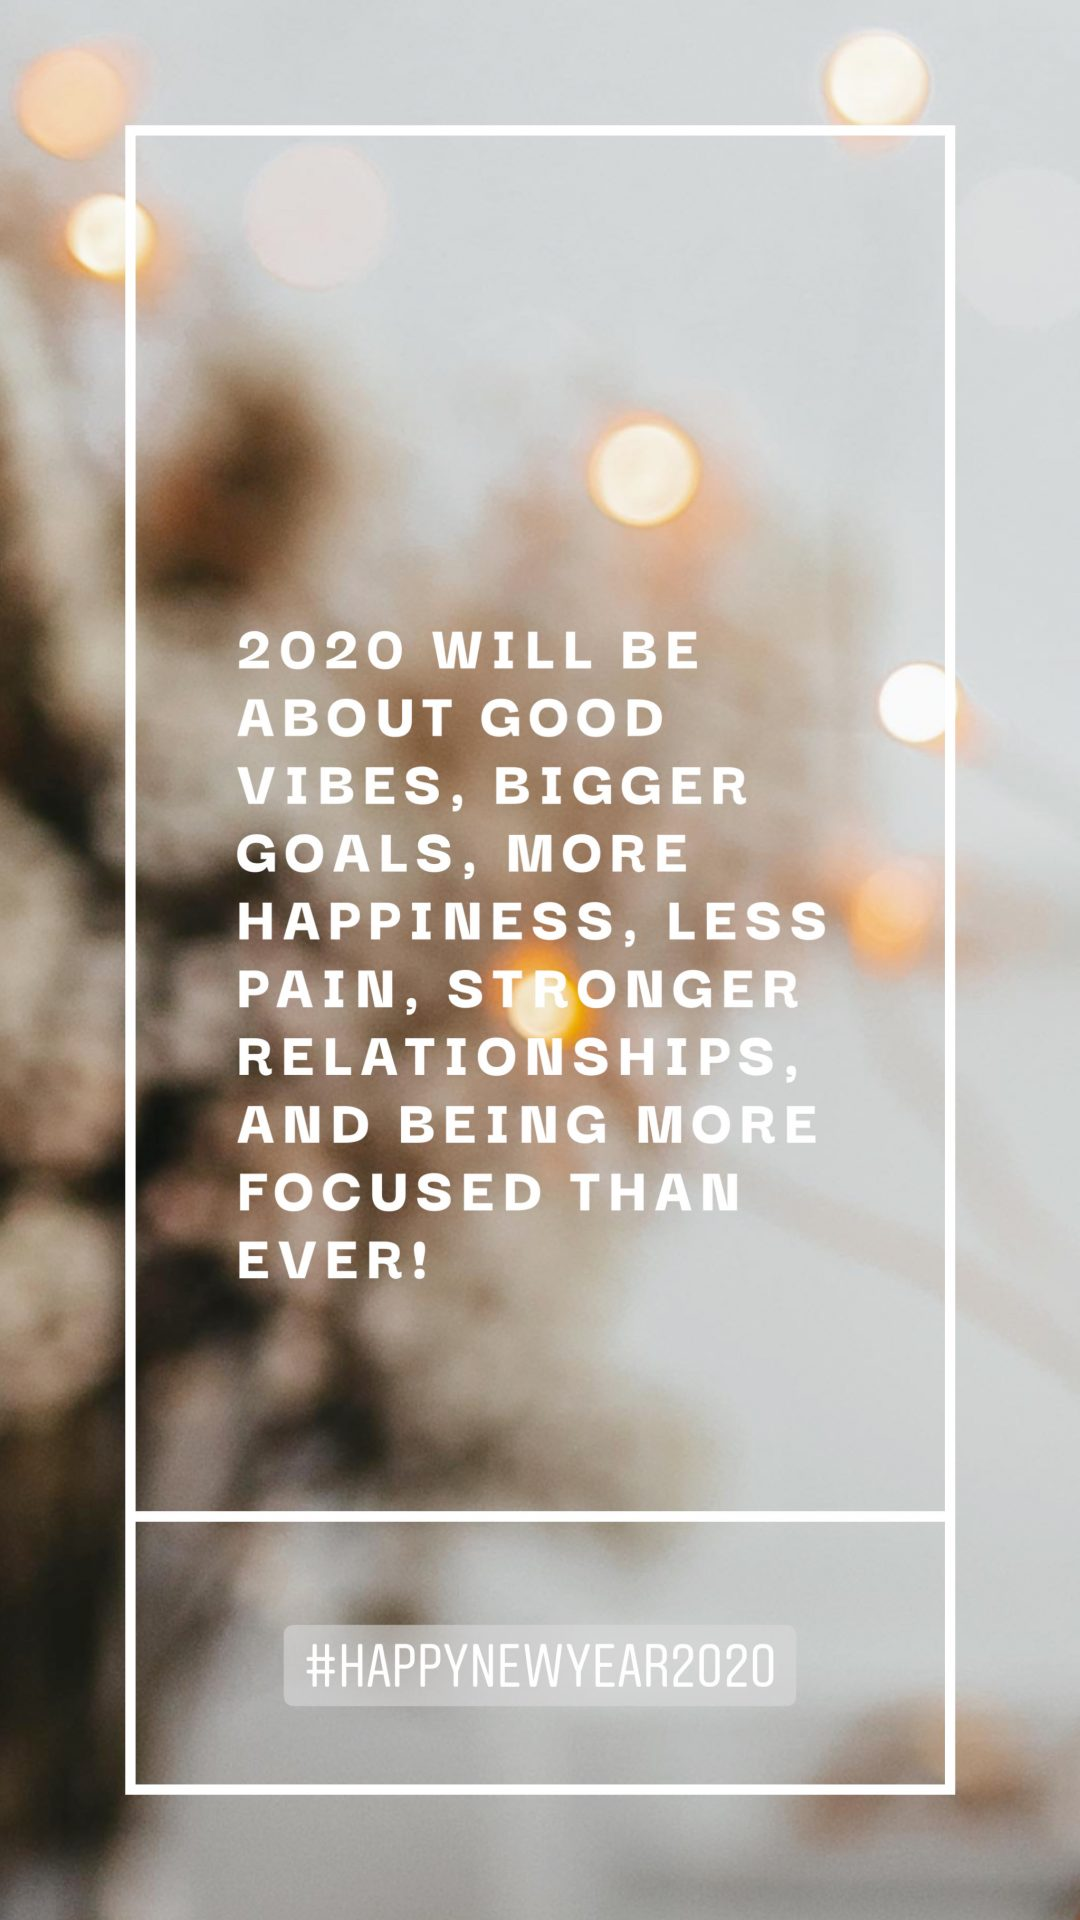 new year 2020 qotes 1